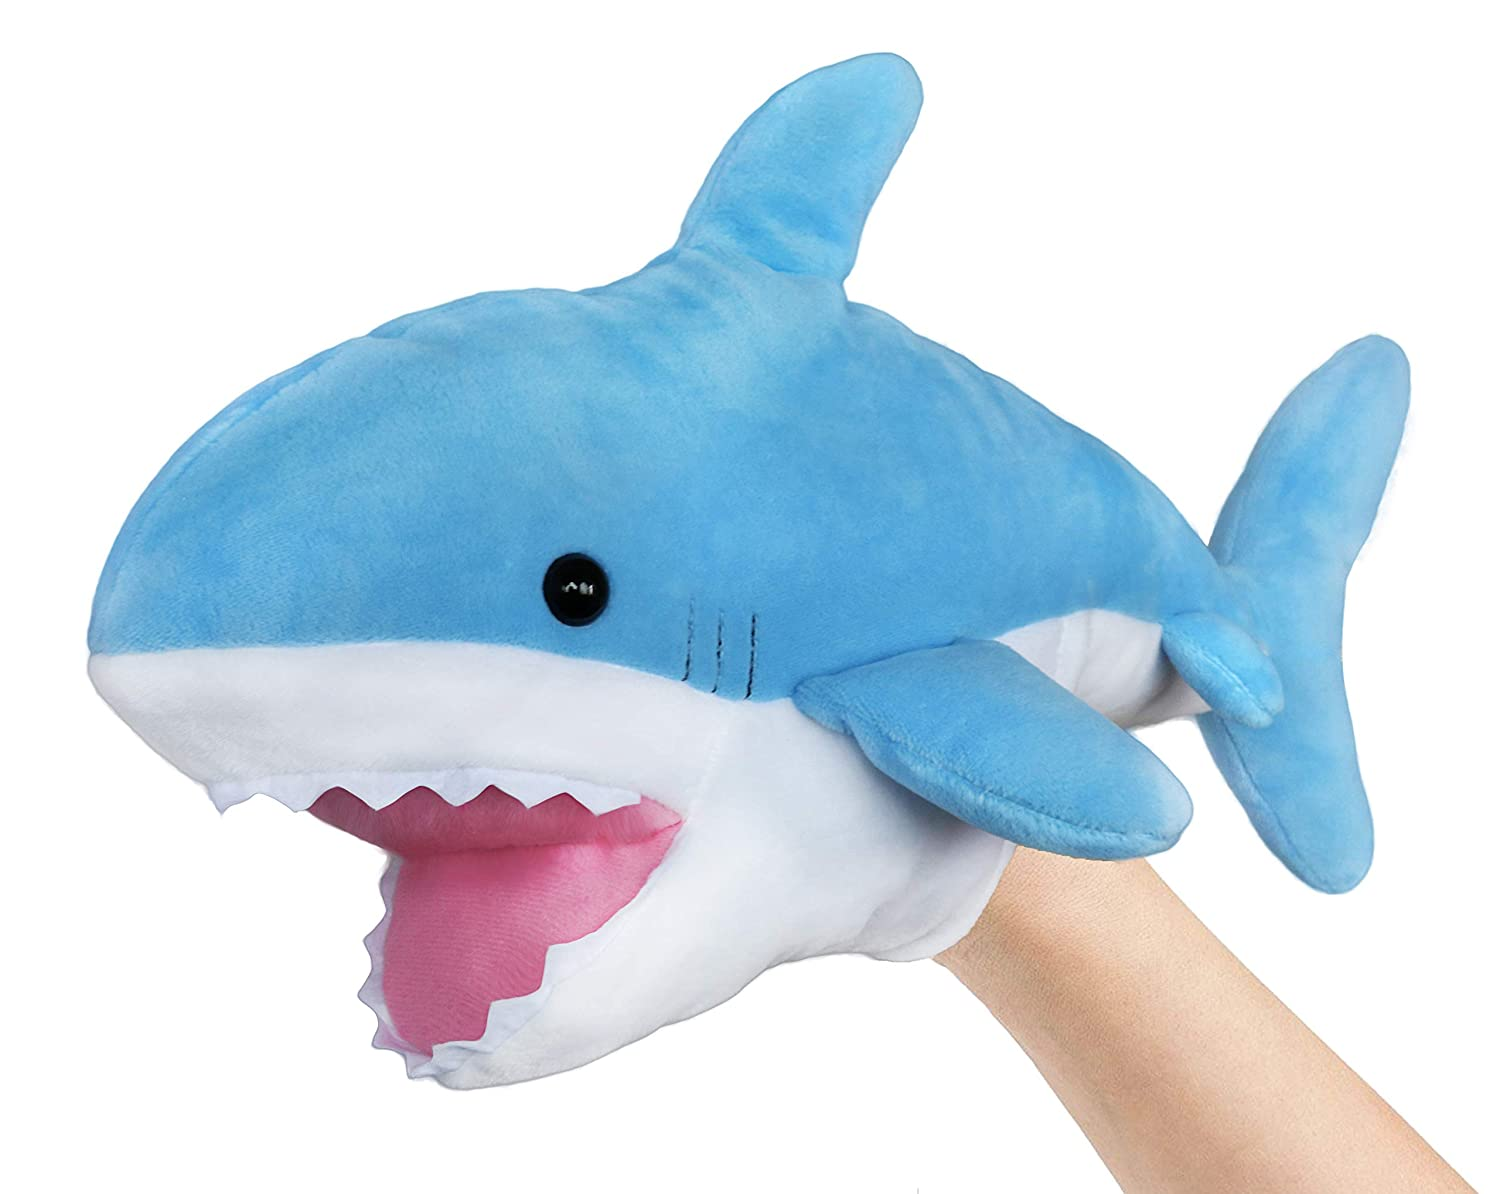 Ice King Bear Cute Blue Plush Shark Hand Puppet - Stuffed Animal Toy - 14 Inches Long